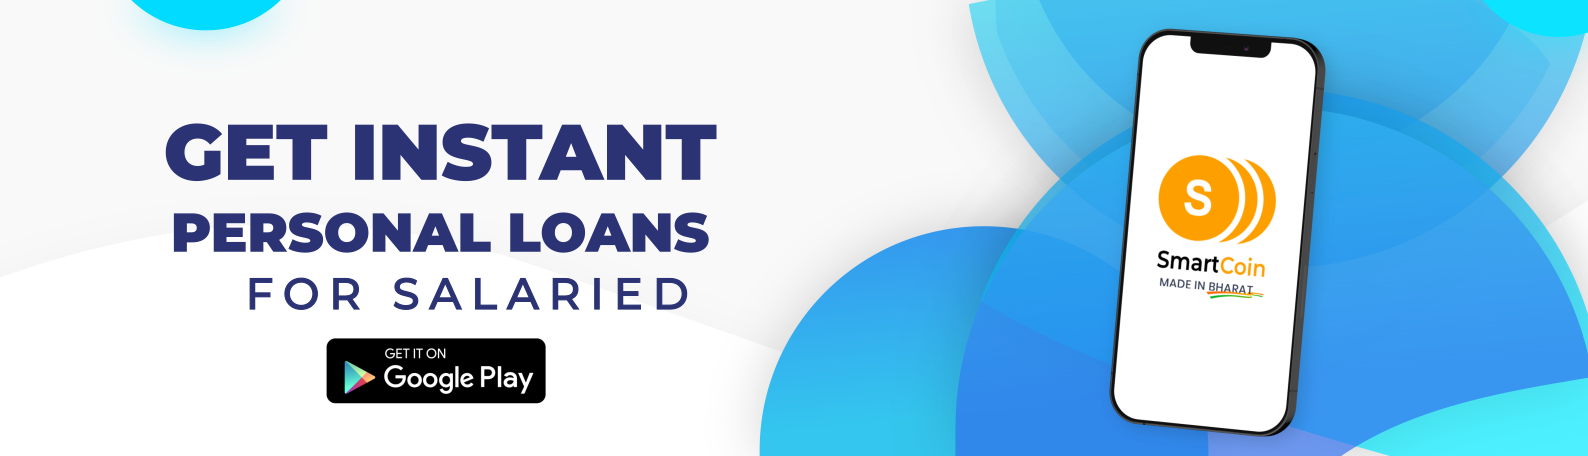 Instant Personal Loans in India